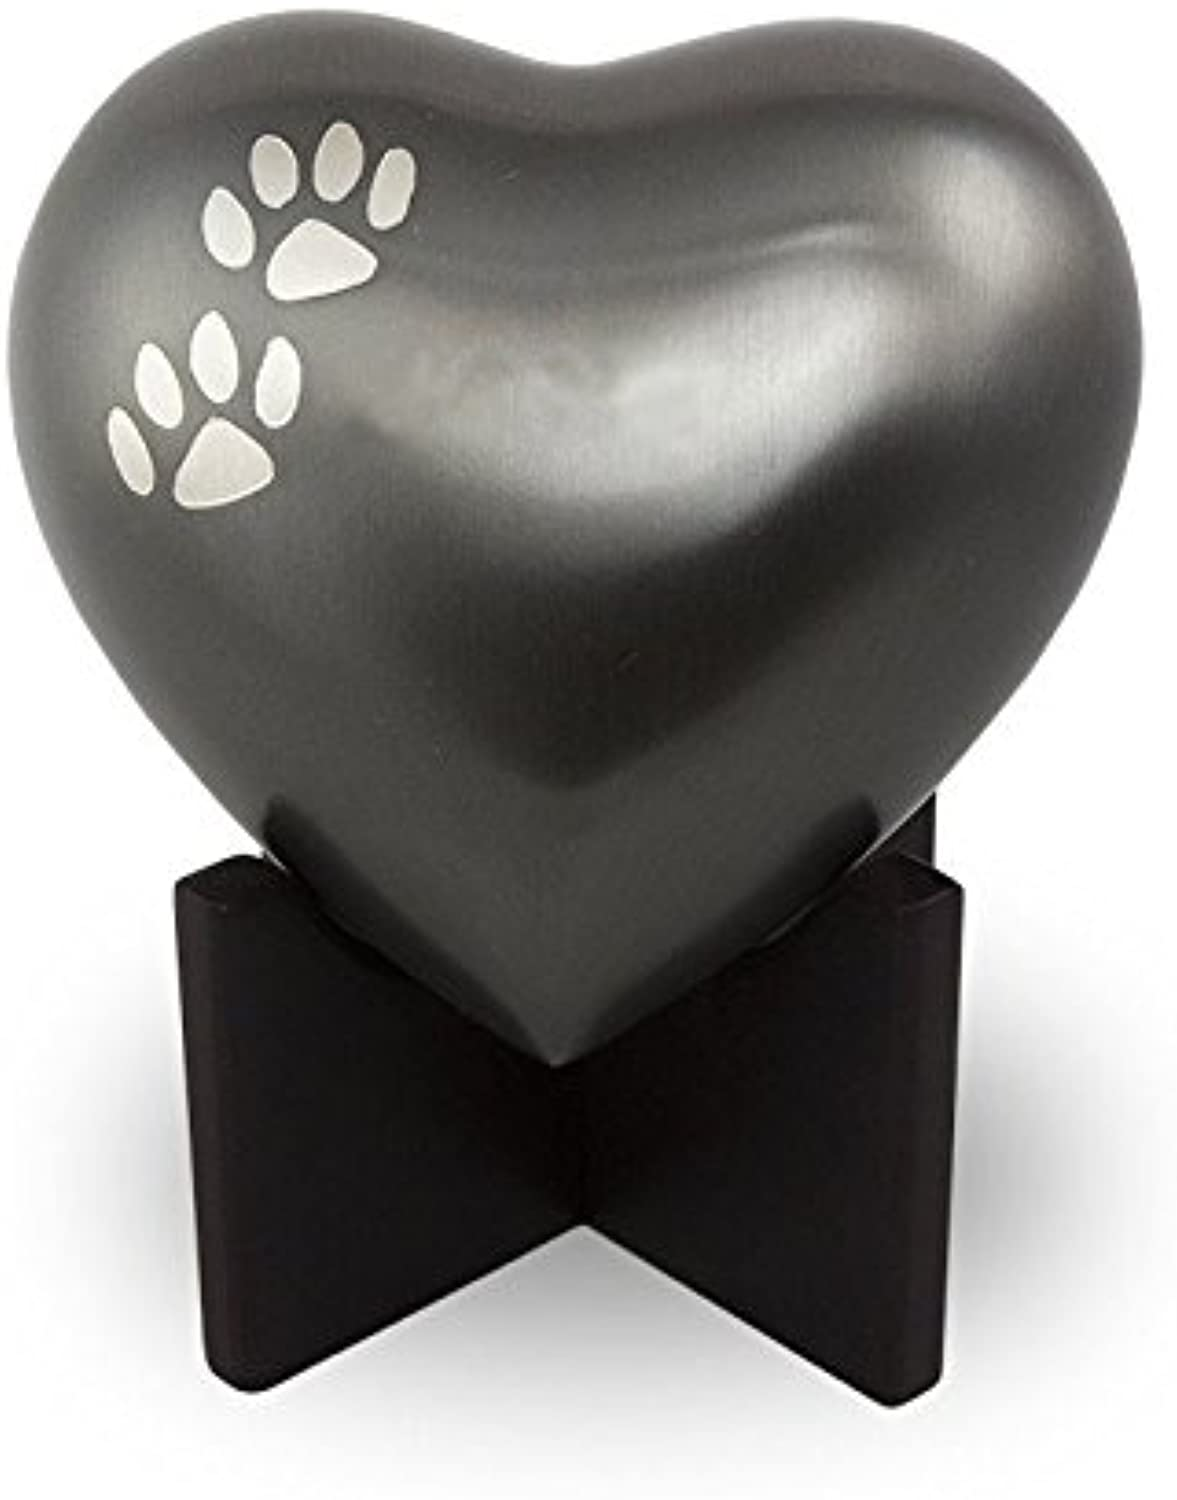 OneWorld Memorials Paw Print Heart Bronze Pet Urn  Small  Holds Up to 20 Cubic Inches of Ashes  Slate Grey Pet Cremation Urn for Ashes  Engraving Sold Separately